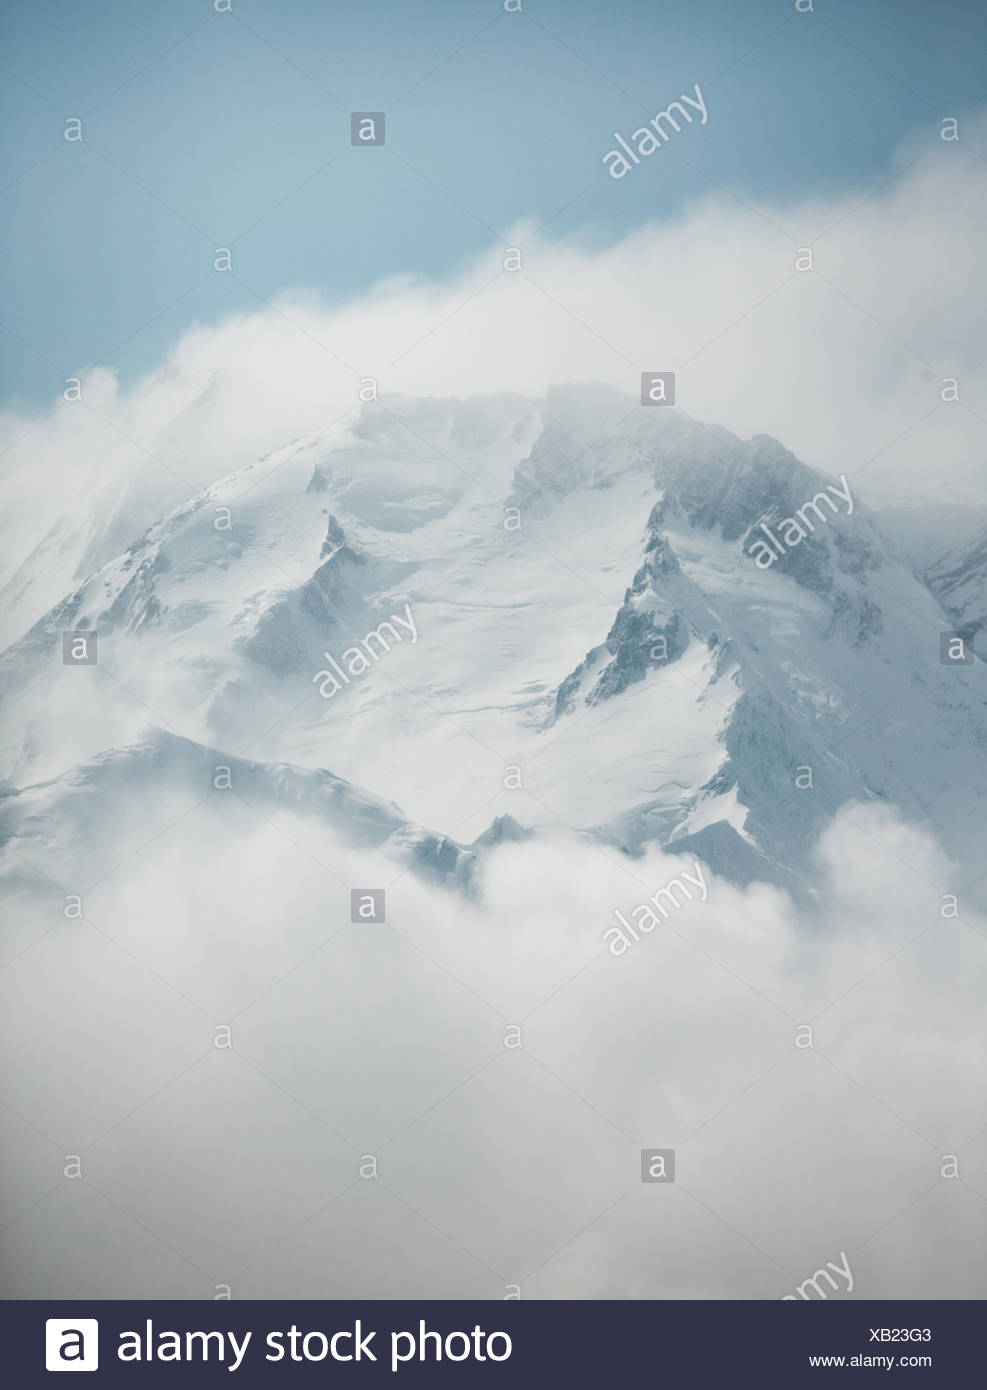 The peak of Nanga Parbat, 8,126 m or 26,660 ft, the world's 9th tallest mountain, emerges from cloud cover. - Stock Image